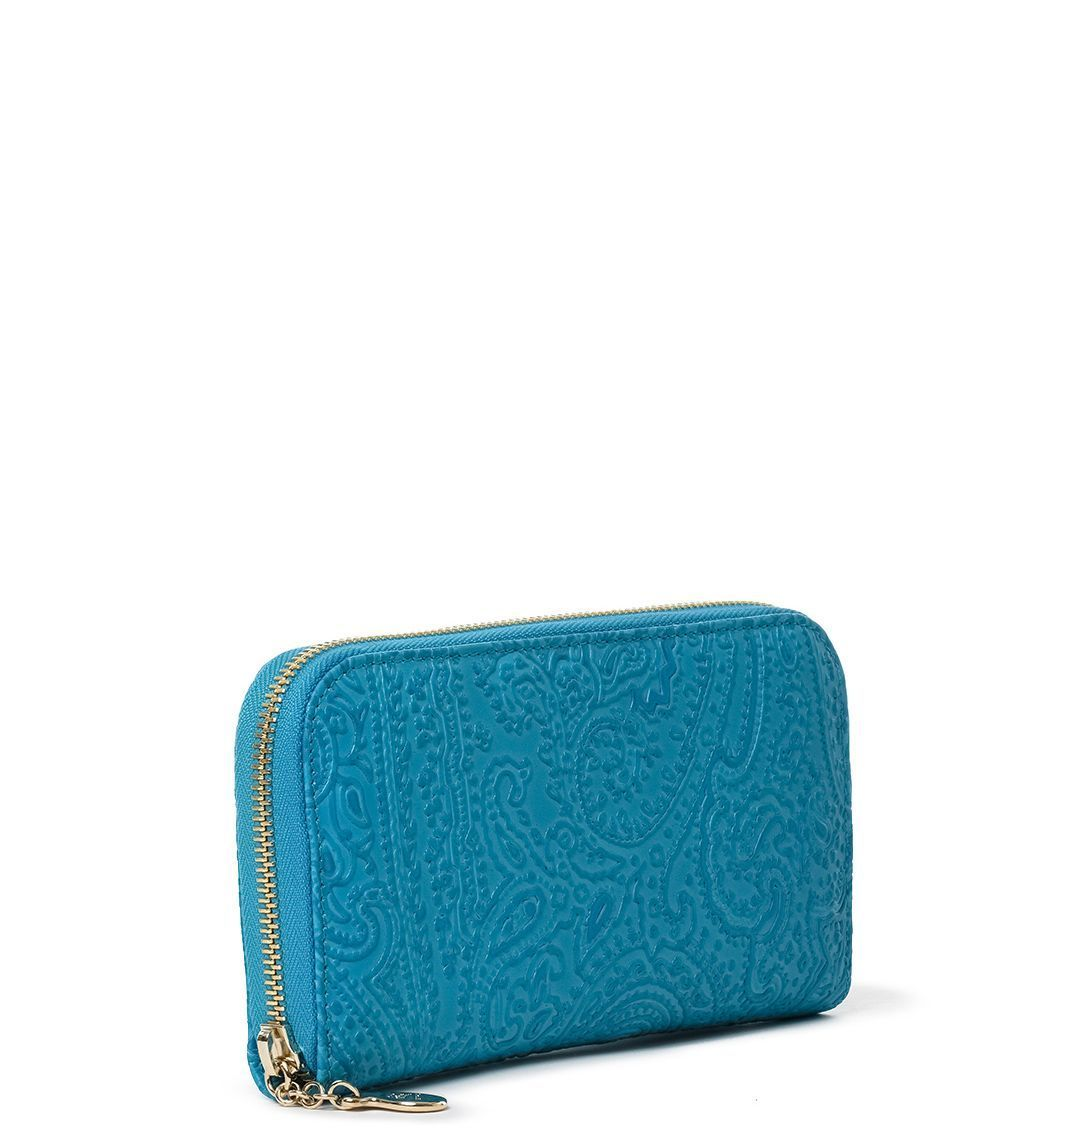 ETRO WOMEN'S 1B1072744250 LIGHT BLUE LEATHER WALLET